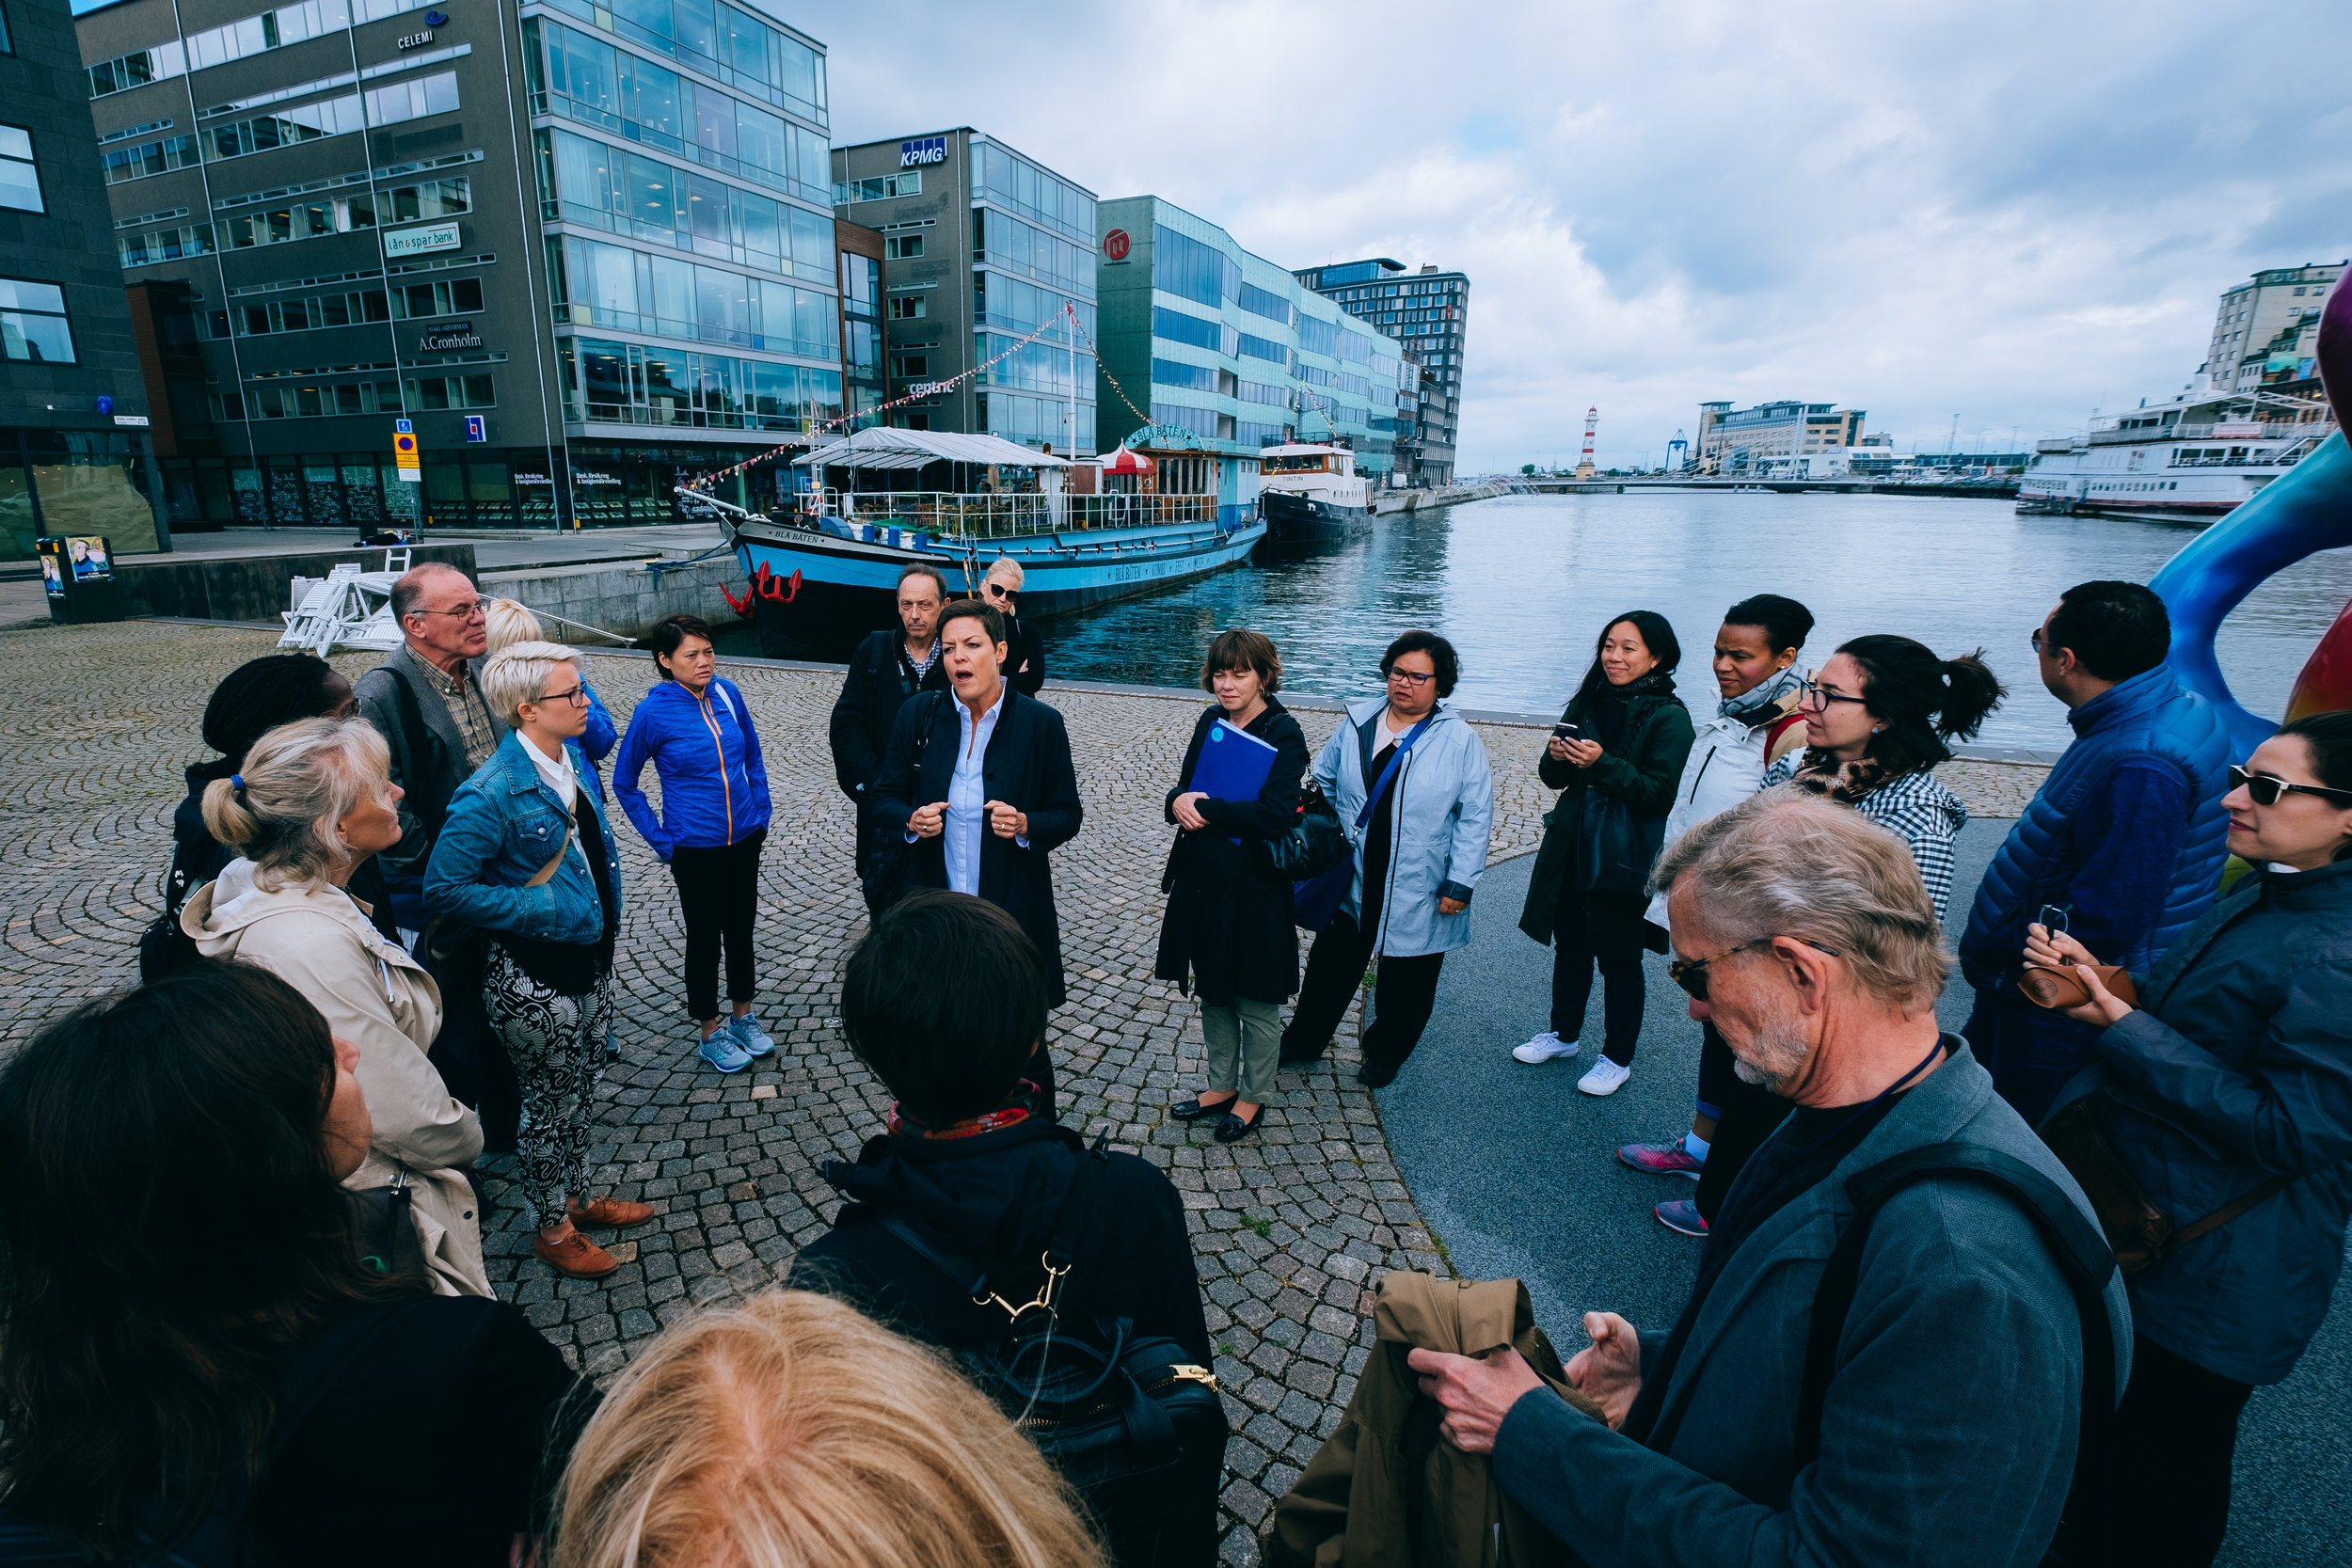 A walking tour of Copenhagen during an educational trip sponsored by The Robert Wood Johnson Foundation.